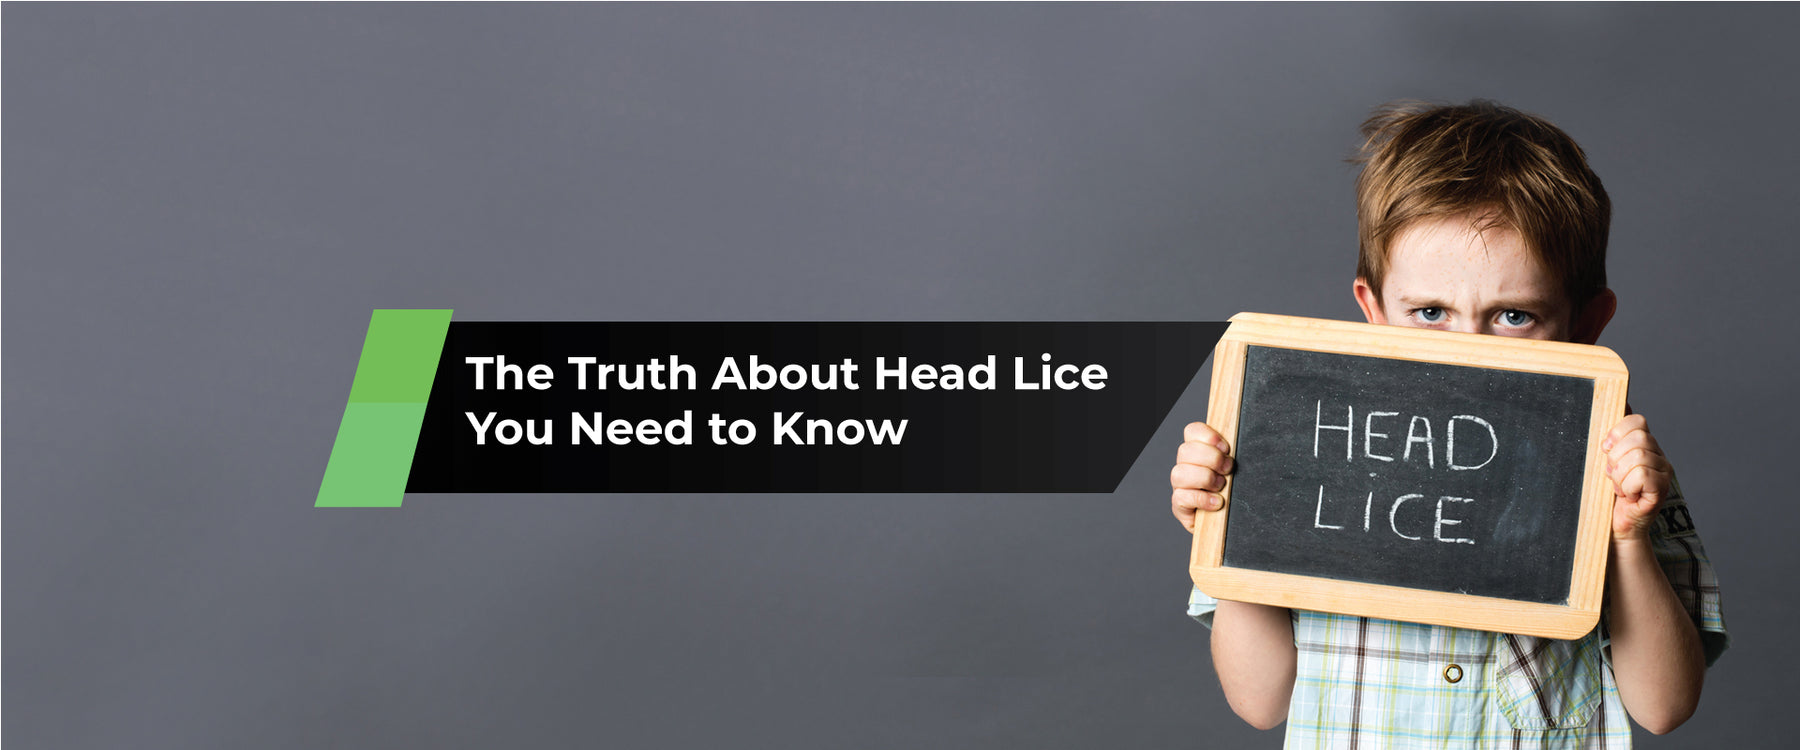 The Truth About Head Lice You Need to Know